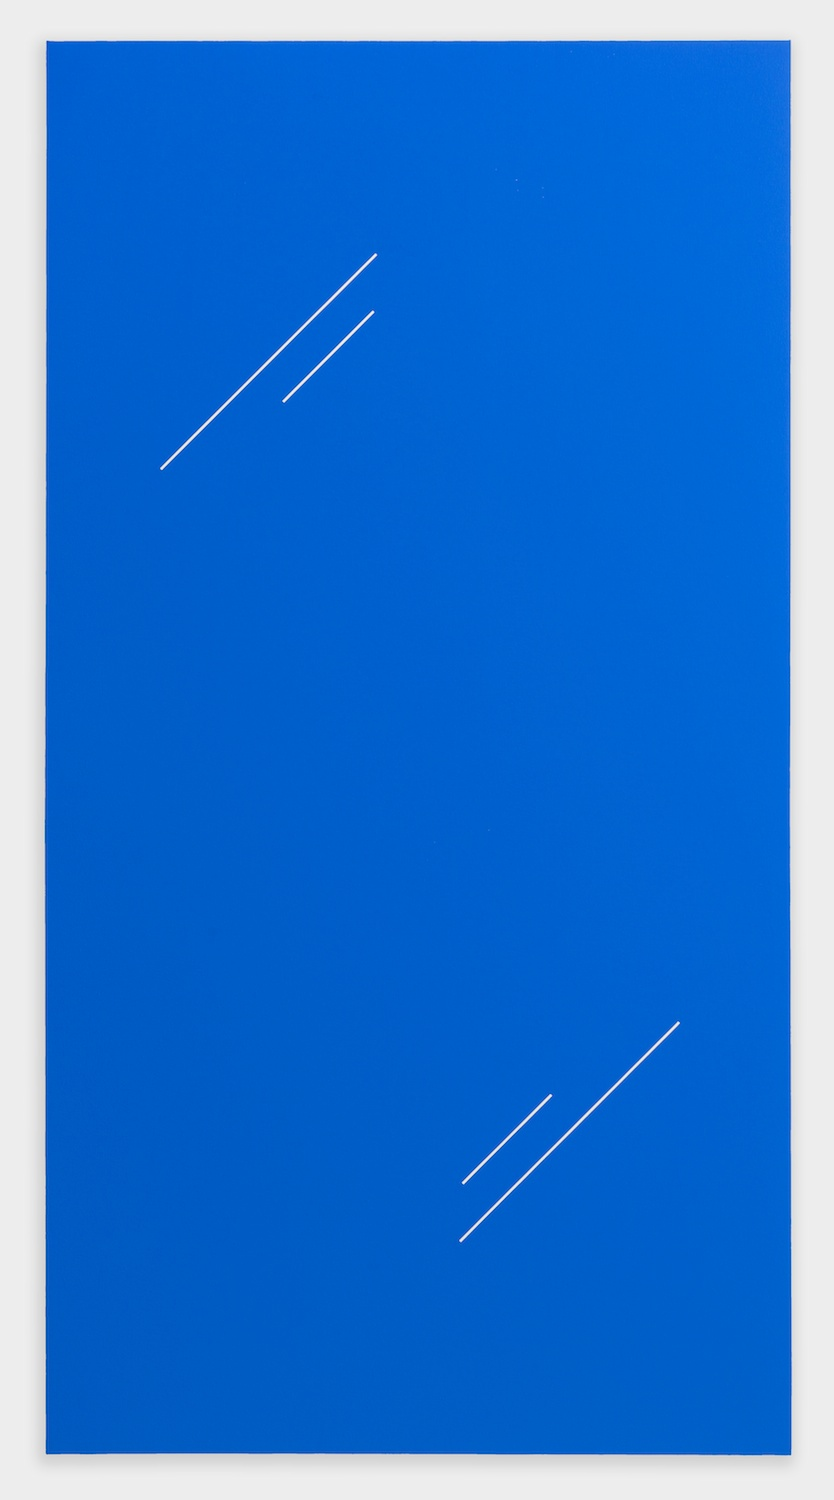 Paul Cowan  BCEAUSE THE SKY IS BULE  2013 Chroma-key blue paint on canvas 78h x 41w in PC081